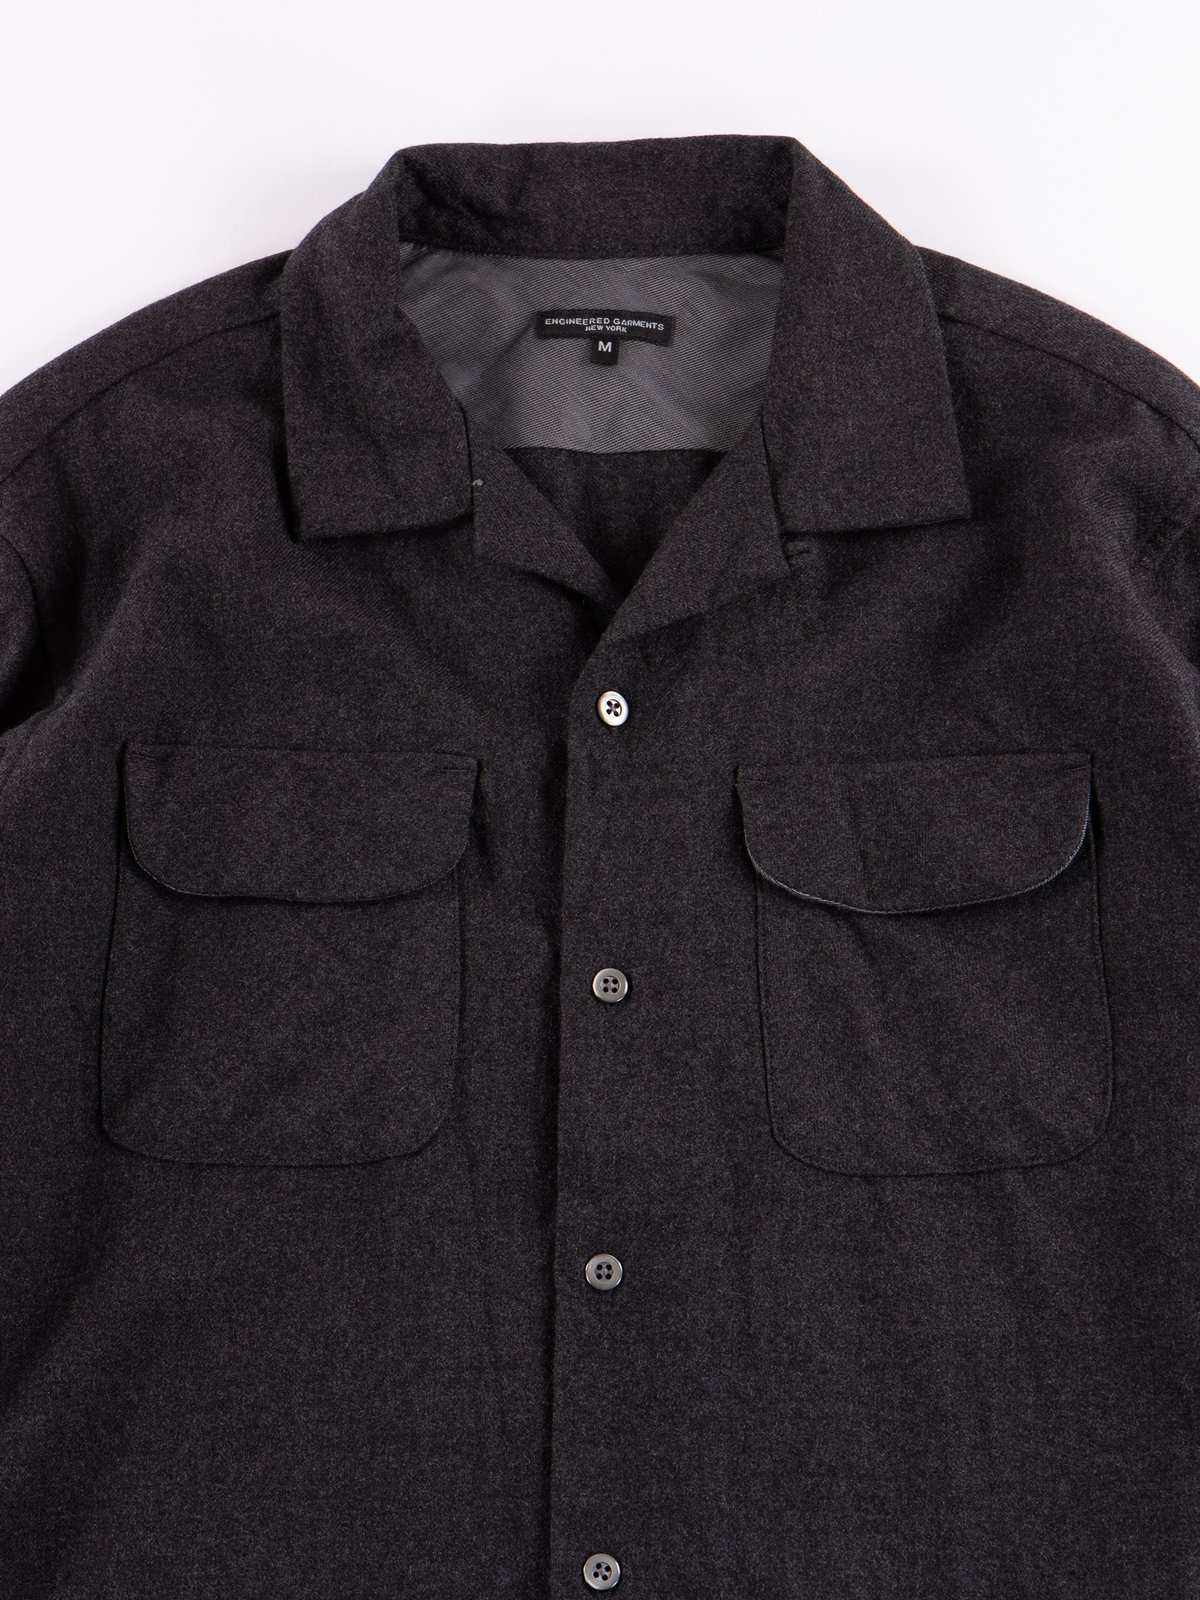 Charcoal Heather Worsted Wool Flannel Classic Shirt - Image 3